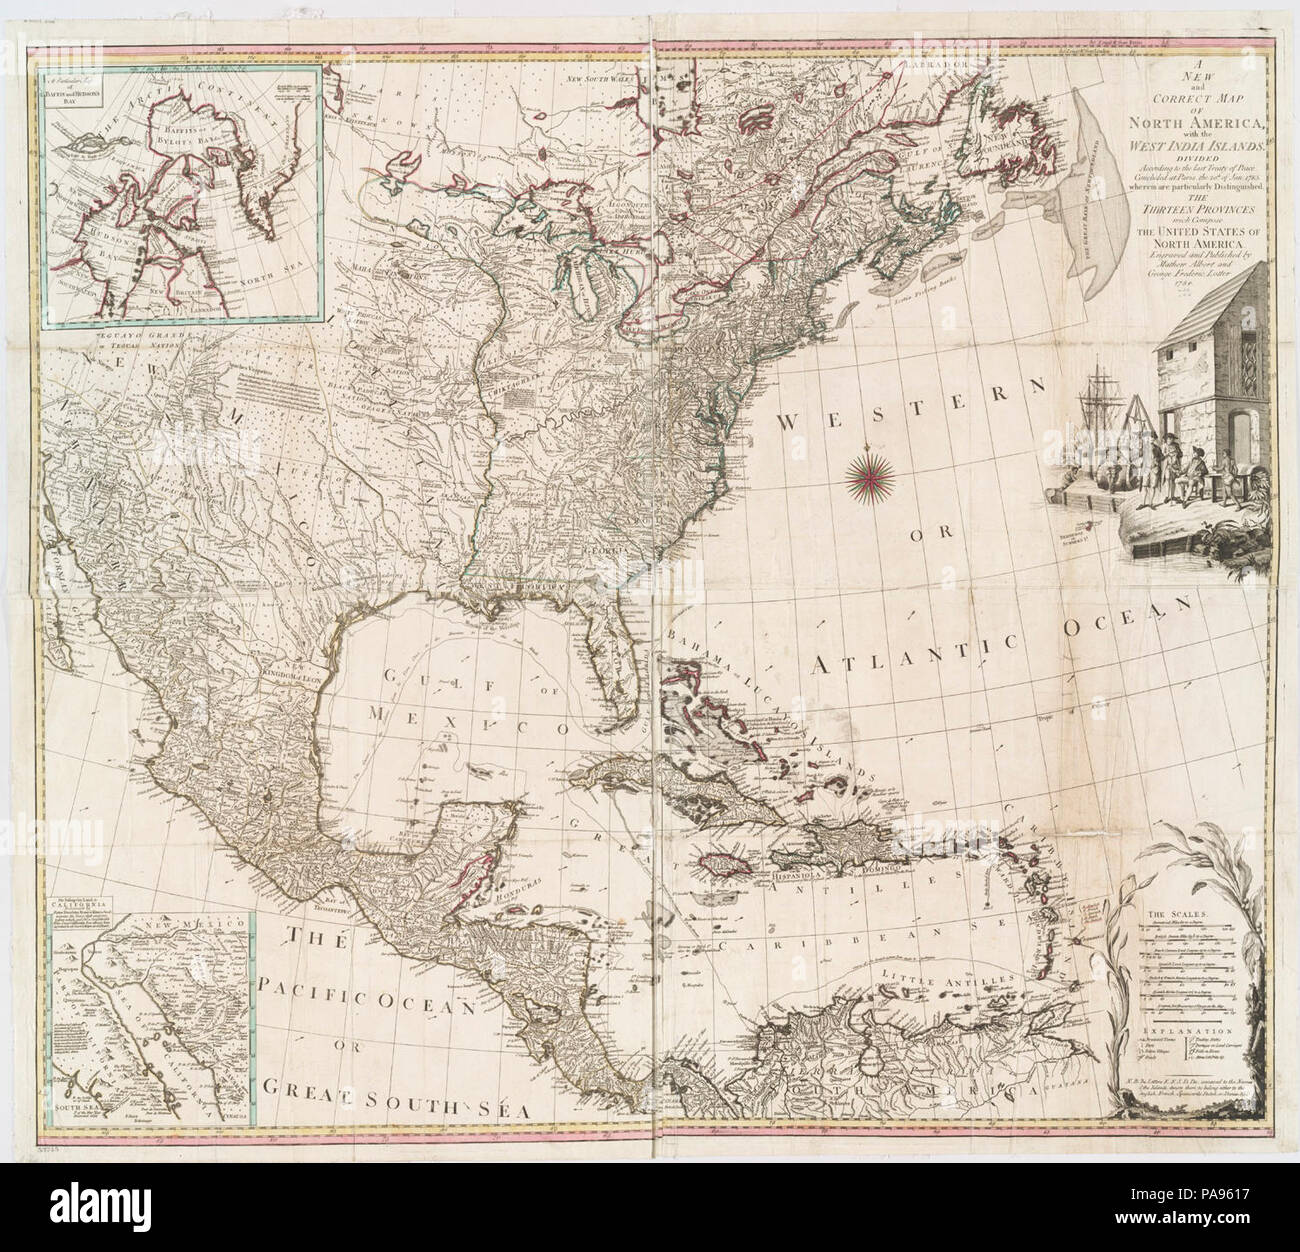 Treaty Of Paris Map 1783.A New And Correct Map Of North America With The West India Islands